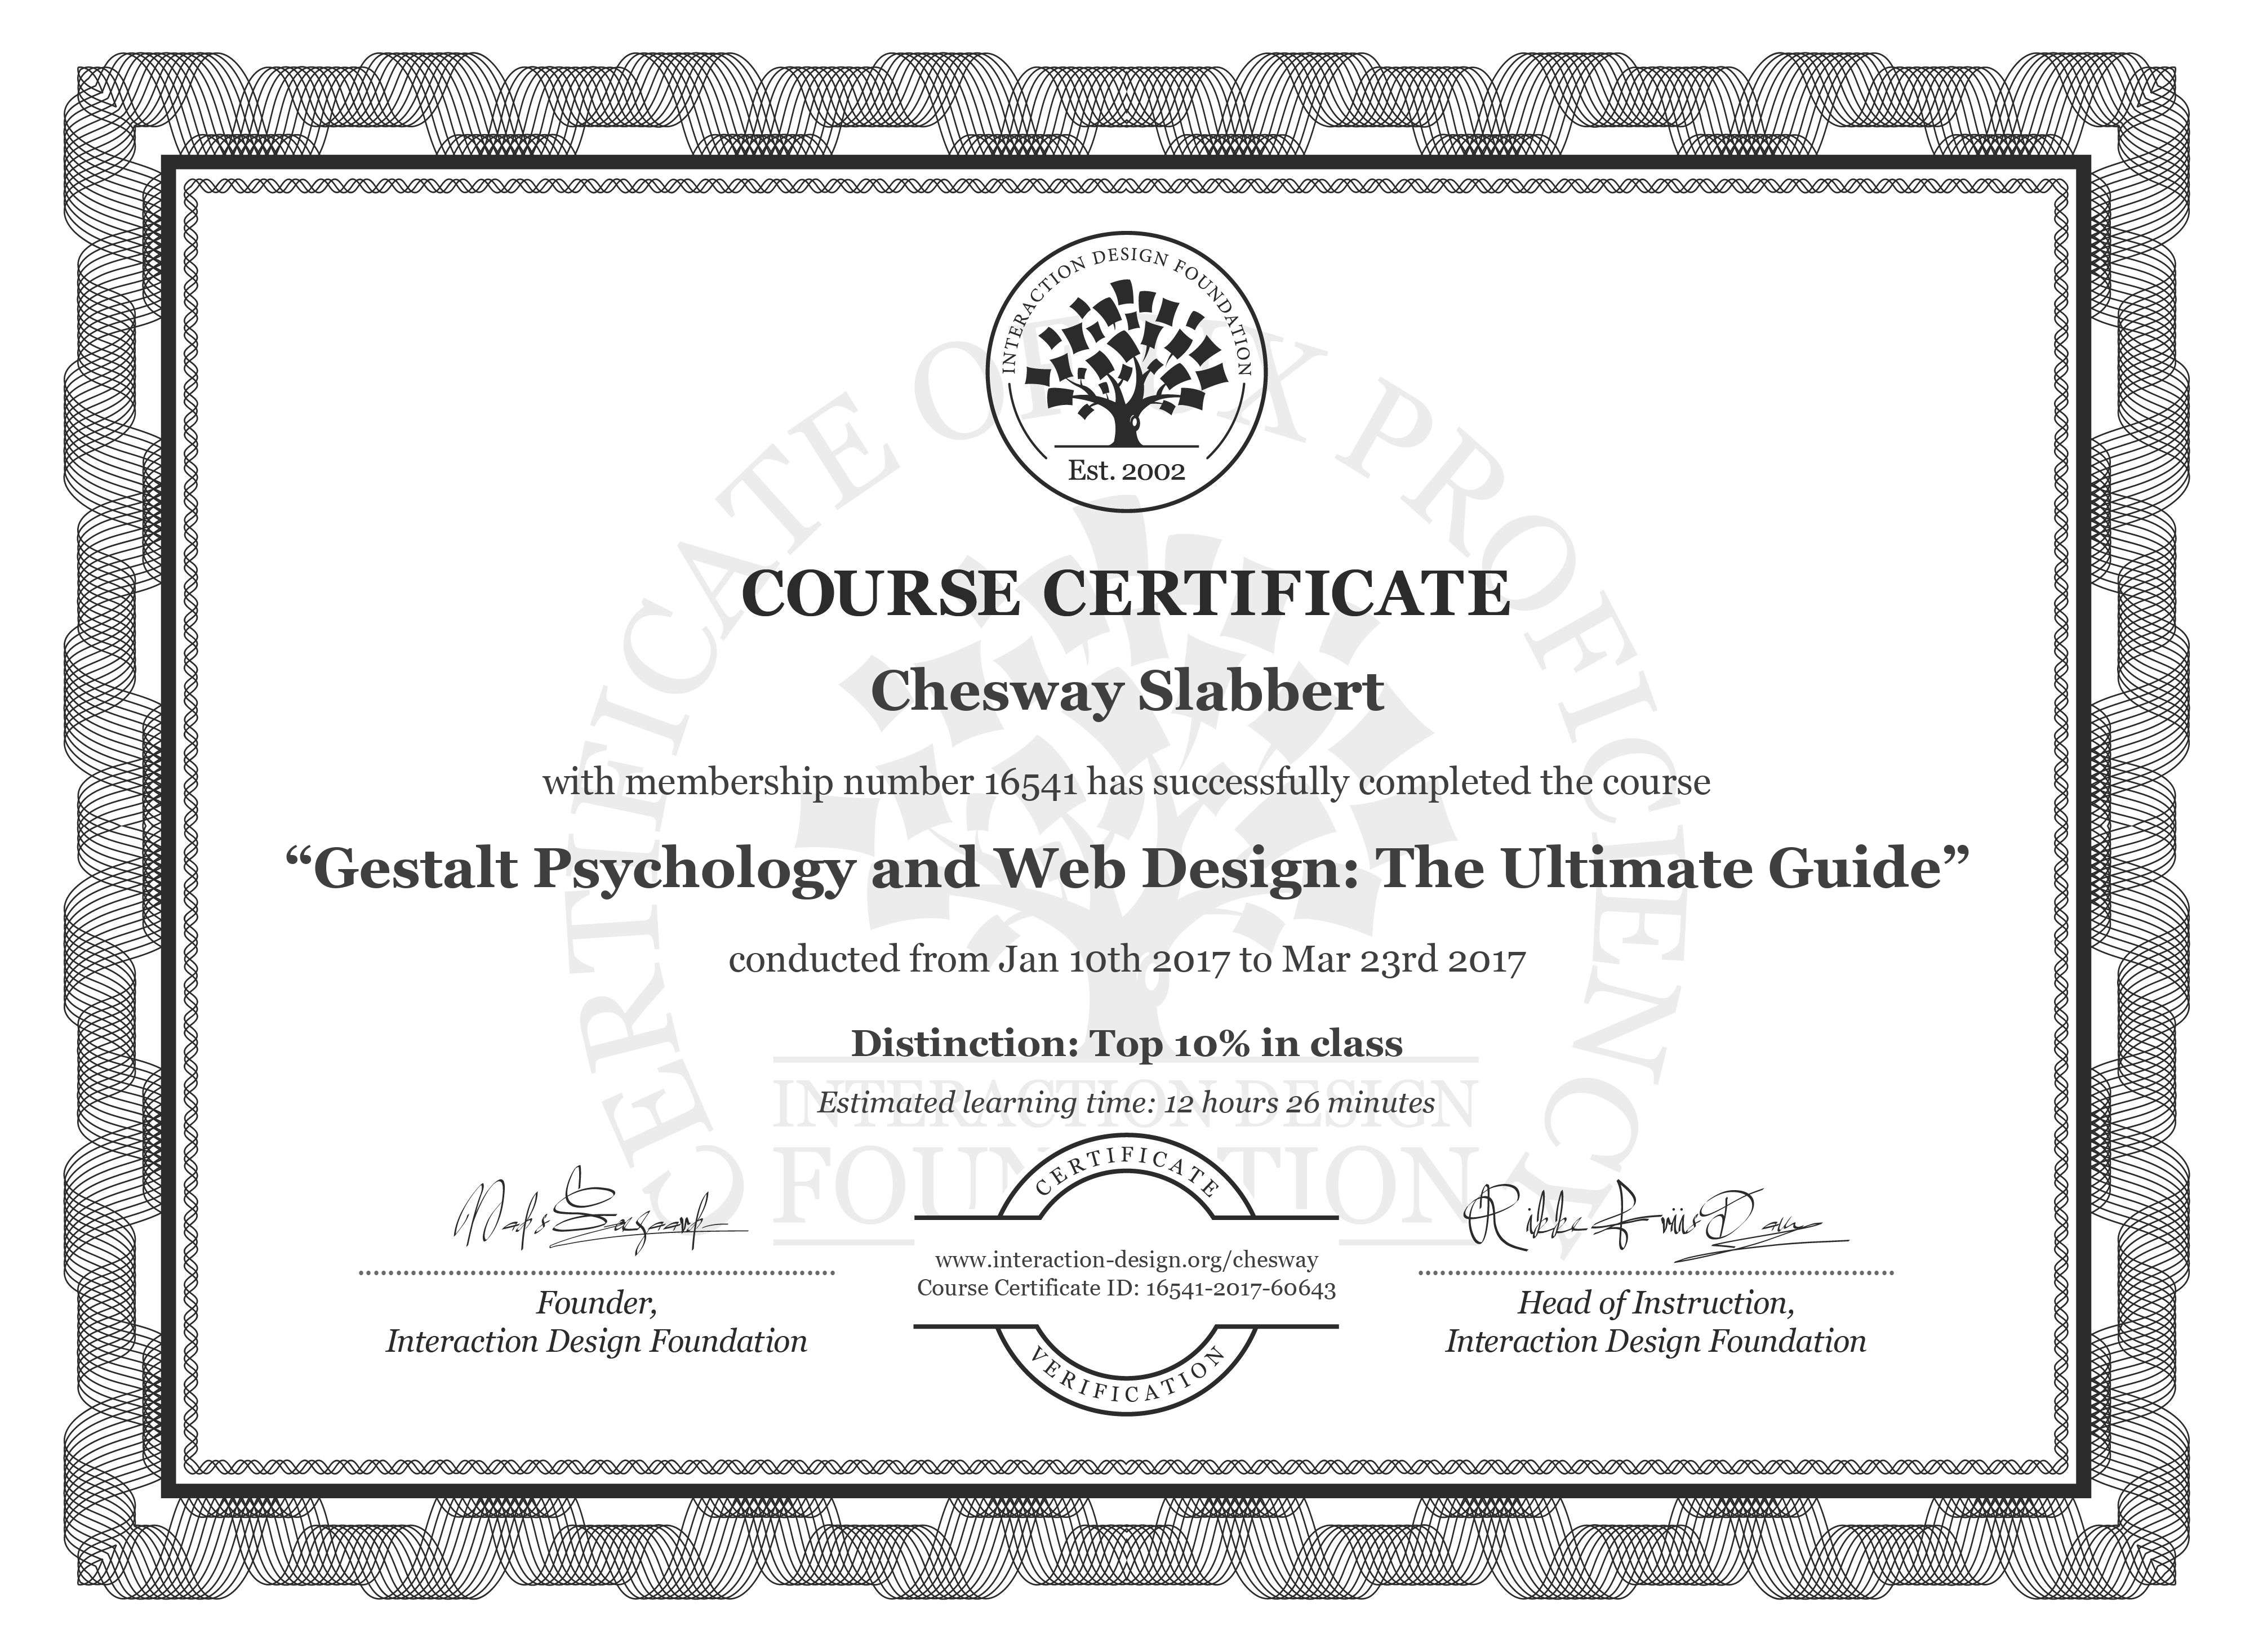 Chesway Slabbert: Course Certificate - Gestalt Psychology and Web Design: The Ultimate Guide